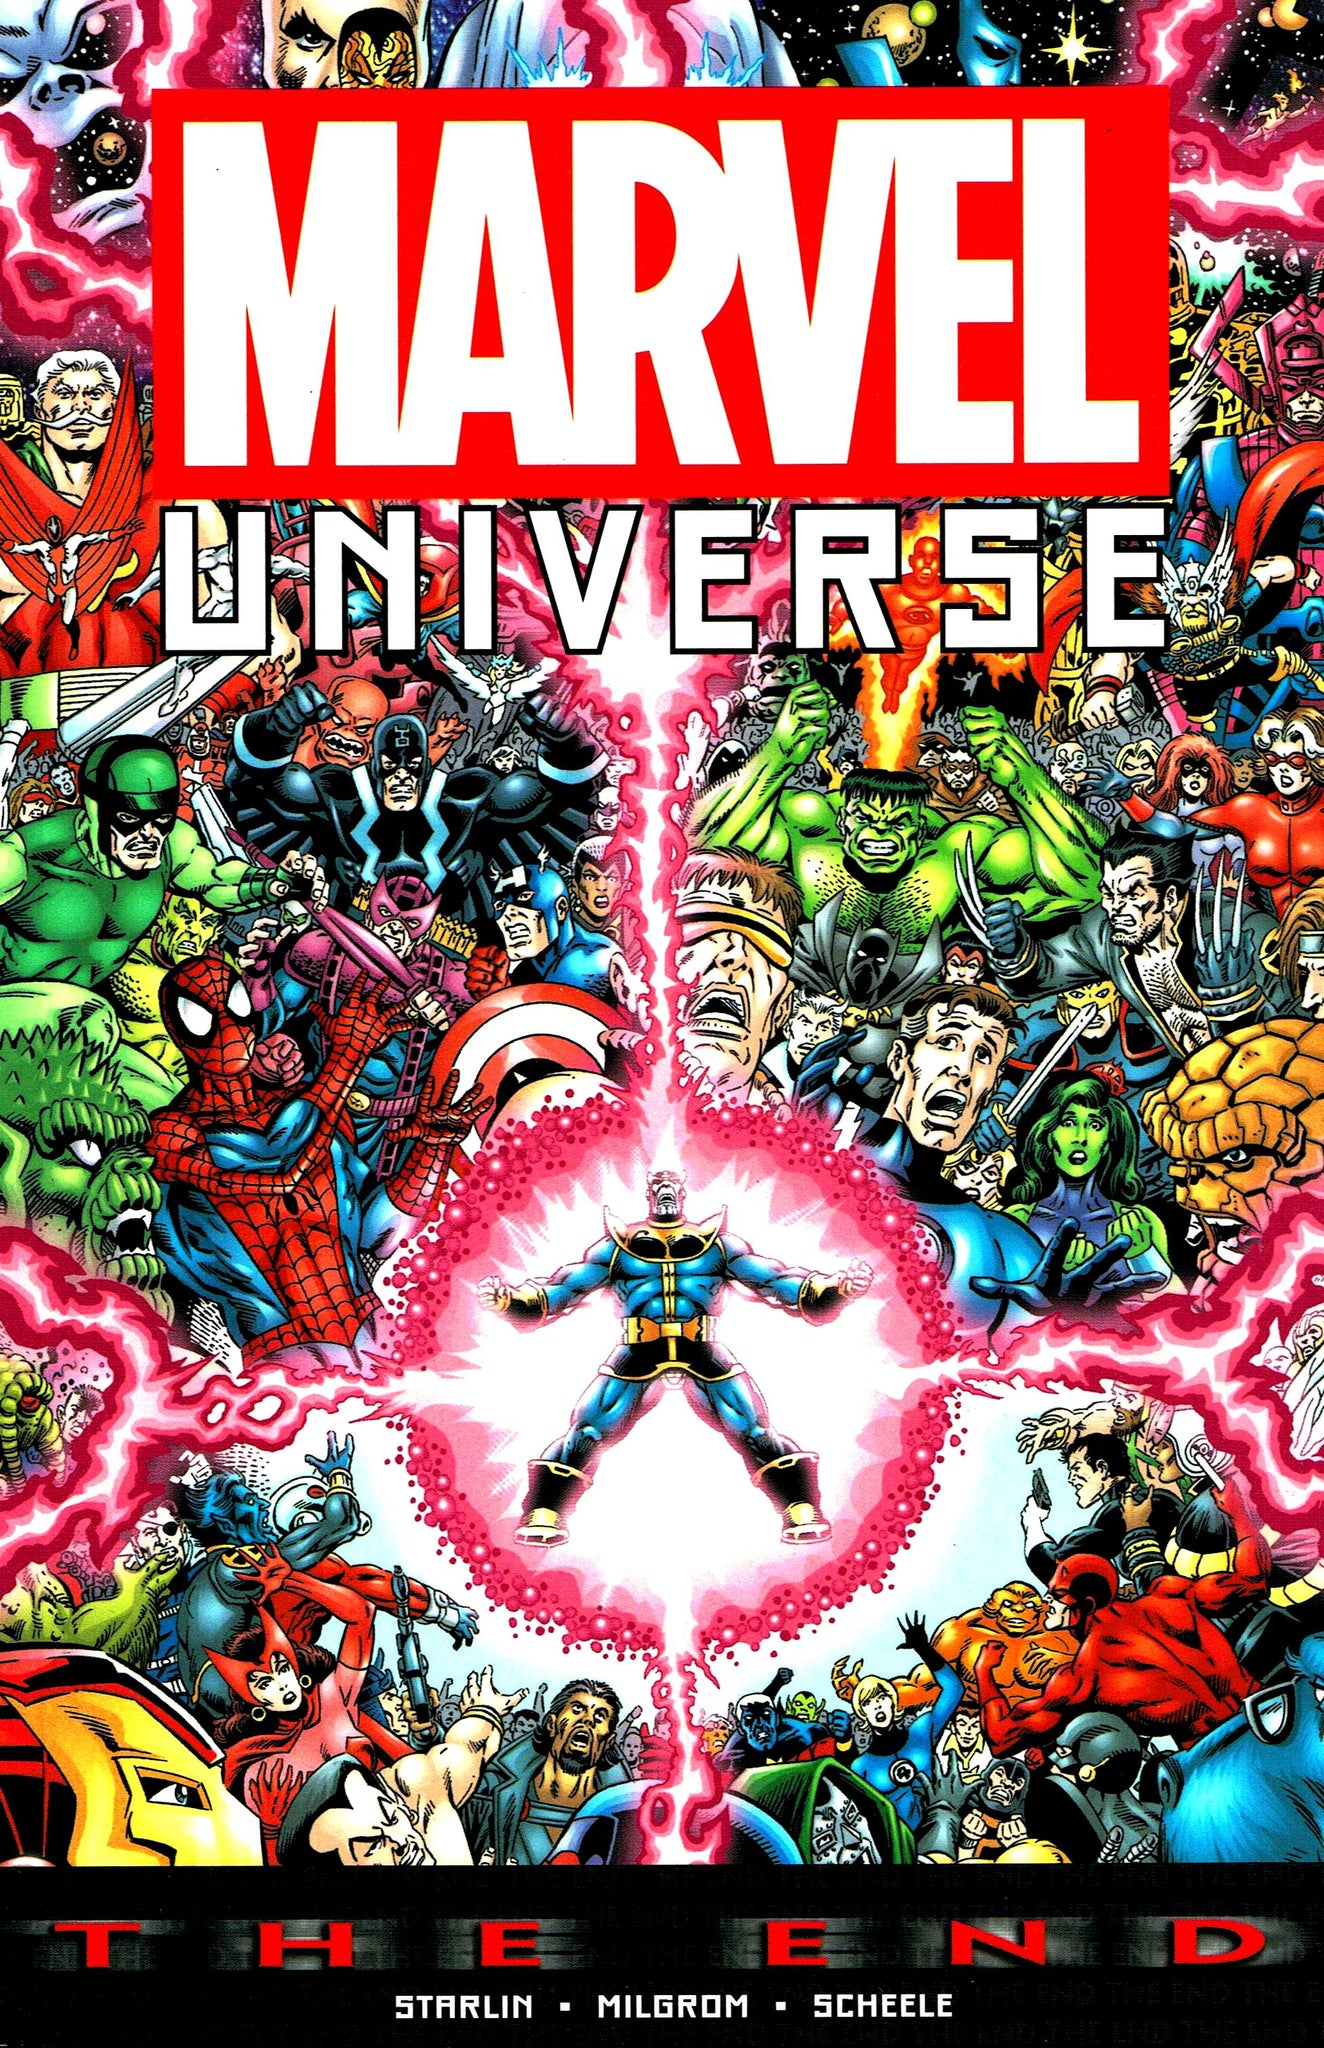 Marvel Universe: The End (2003)